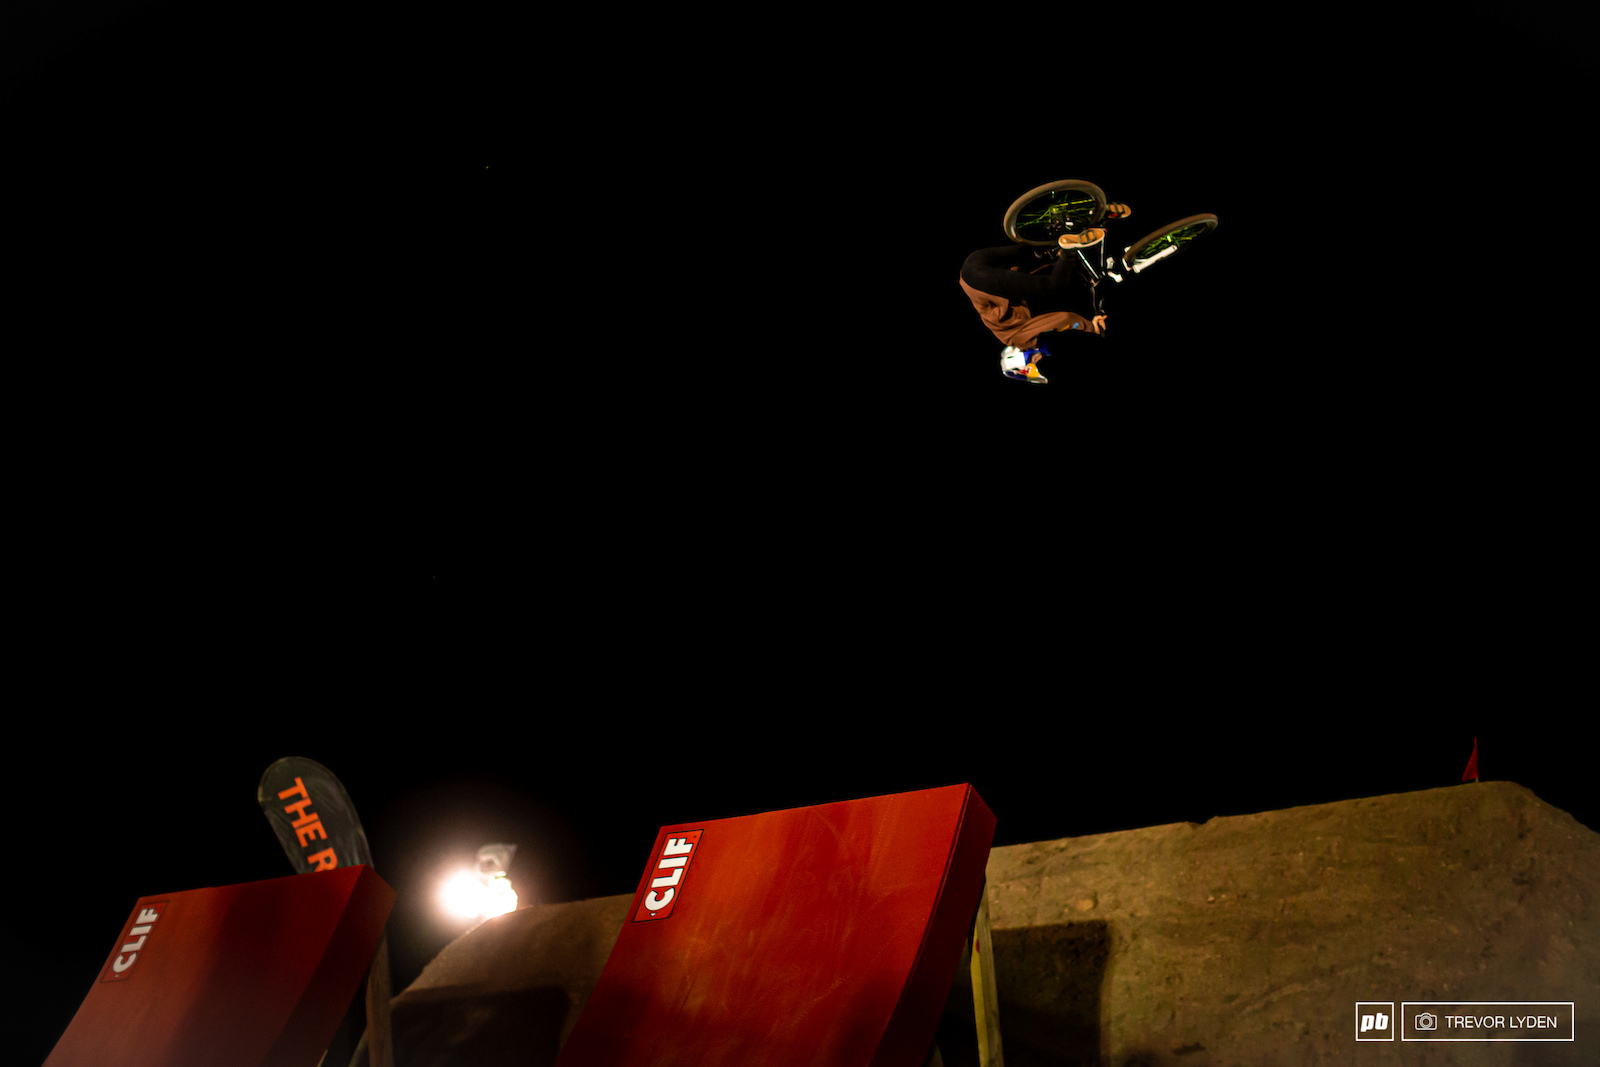 Dawid Godziek with his cash-roll barspin to win best trick.